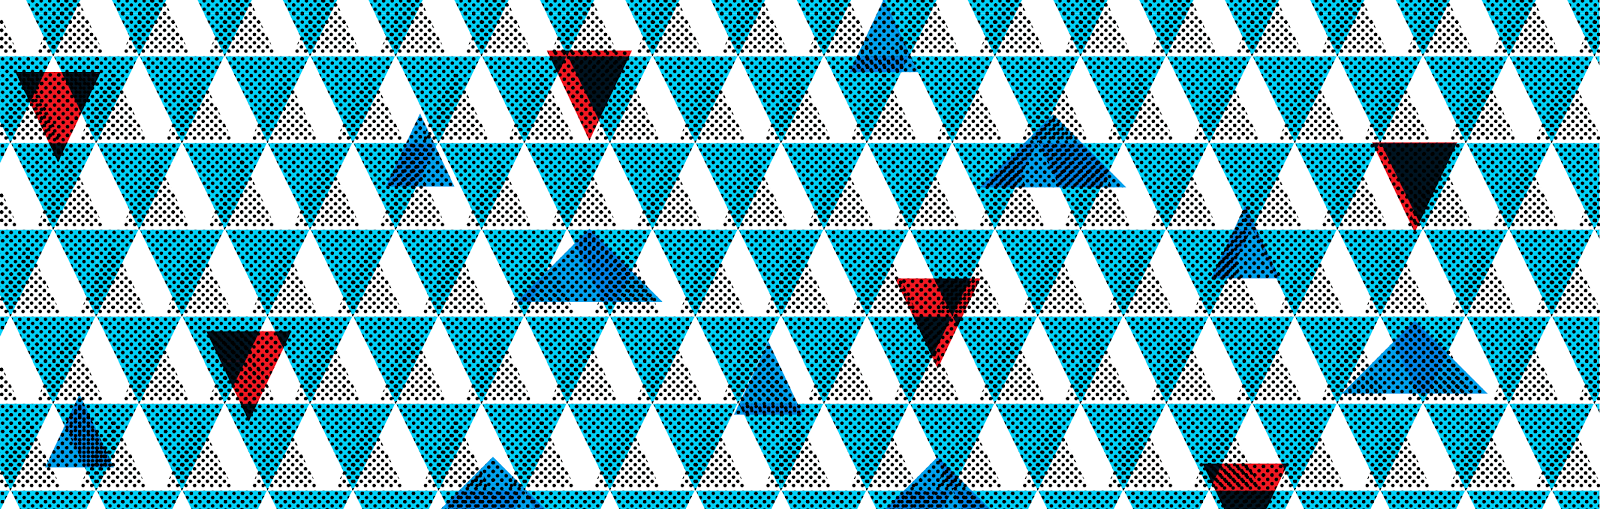 Retro triangles - Jen Haugan Animation & Illustration